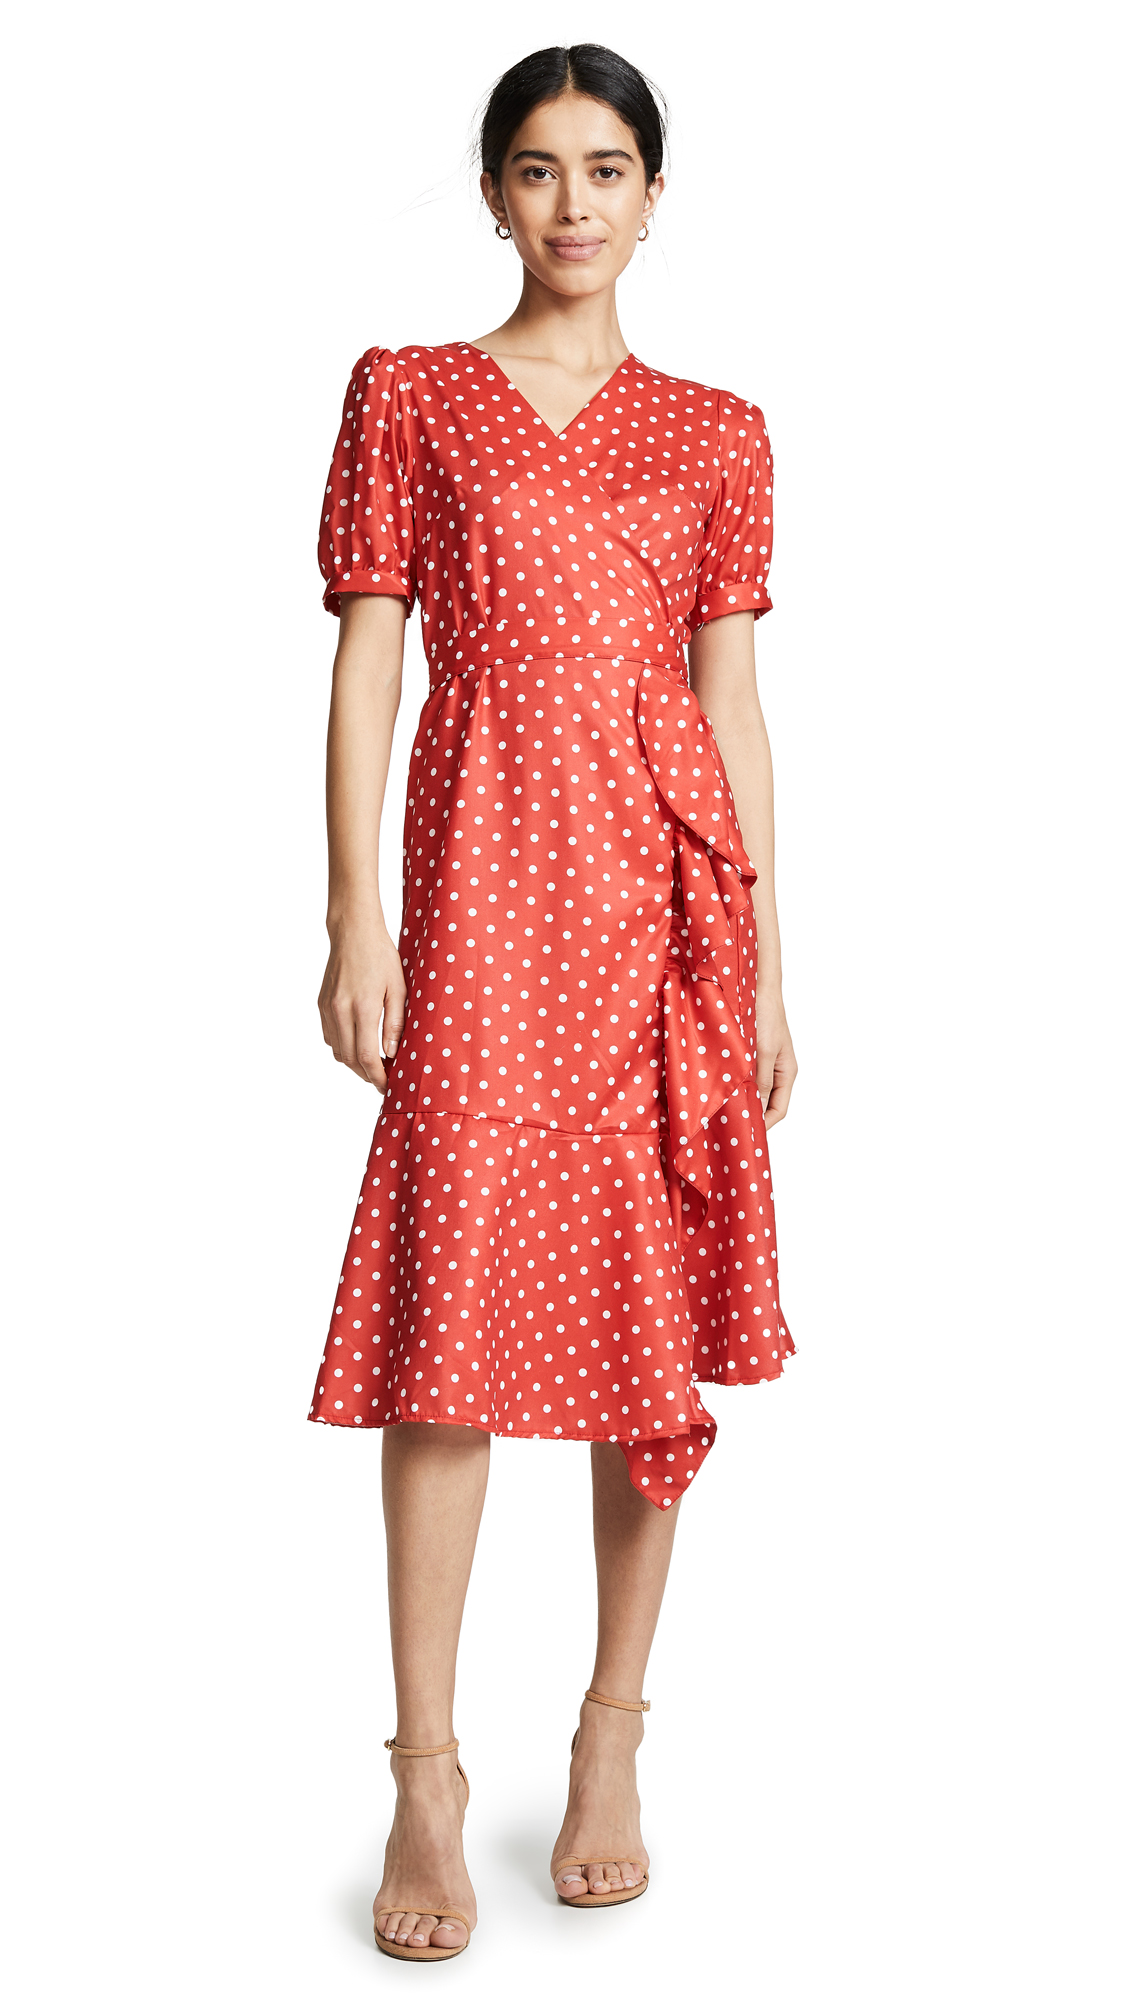 STYLEKEEPERS The Breezy Dress in Red Polka Dots